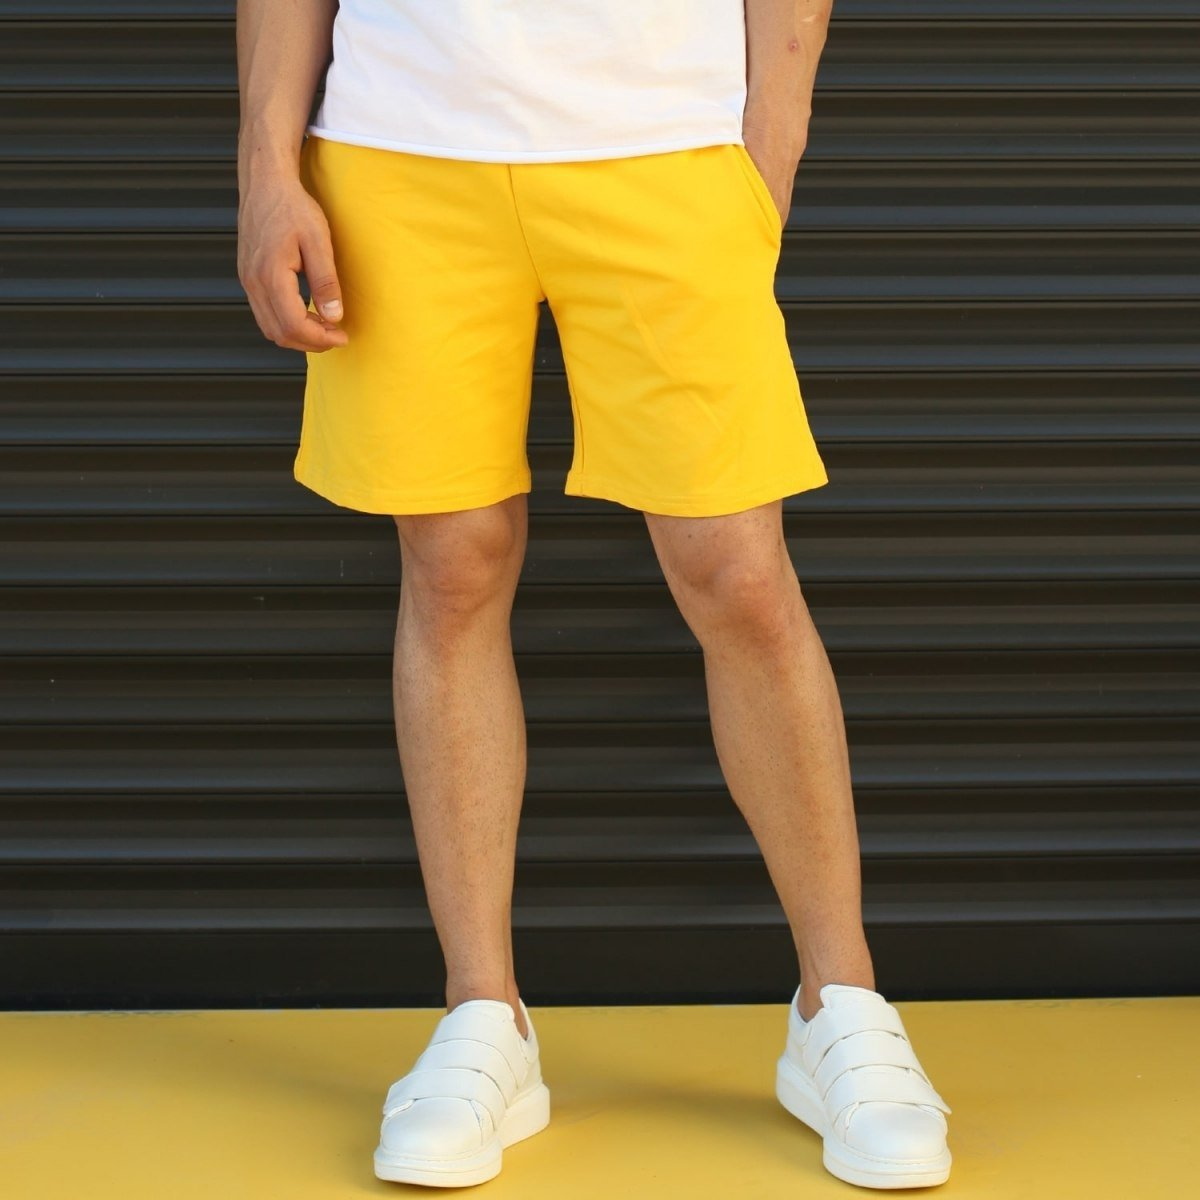 Men's Basic Fleece Sport Shorts With Pockets Yellow Mv Premium Brand - 1